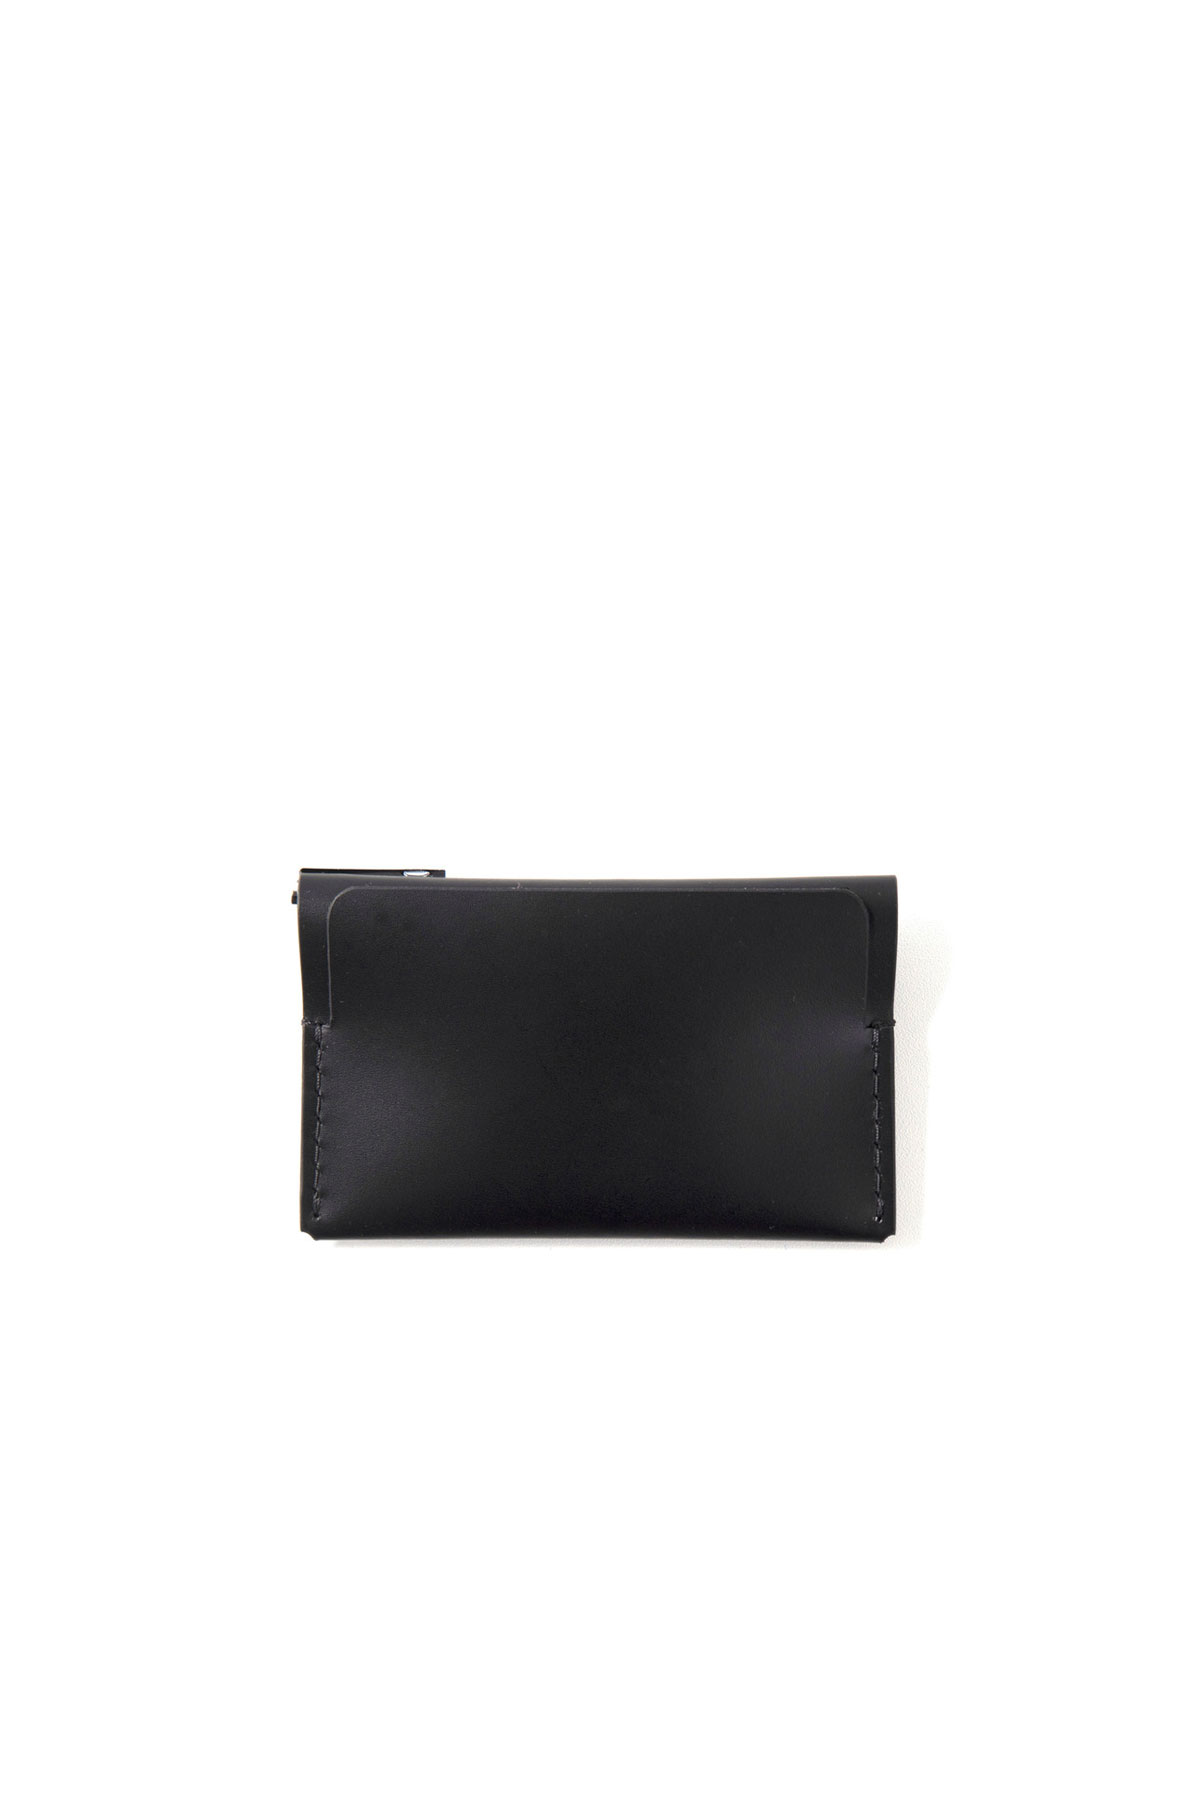 Blankof : WCL 03 T2 Backbend Card Case (Black)